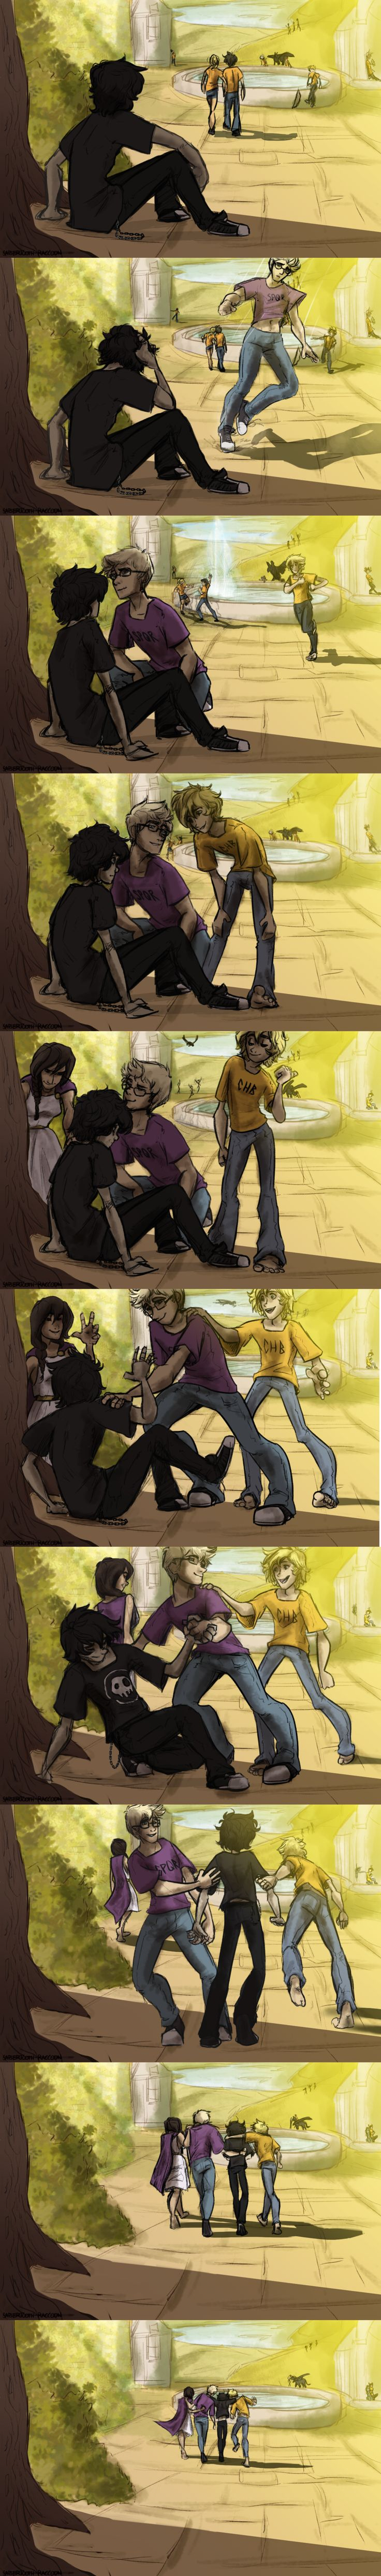 BoO spoilers Nico di Angelo : An Exception by sjsaberfan. AWWW I AM BORDERLINE CRYING STOP